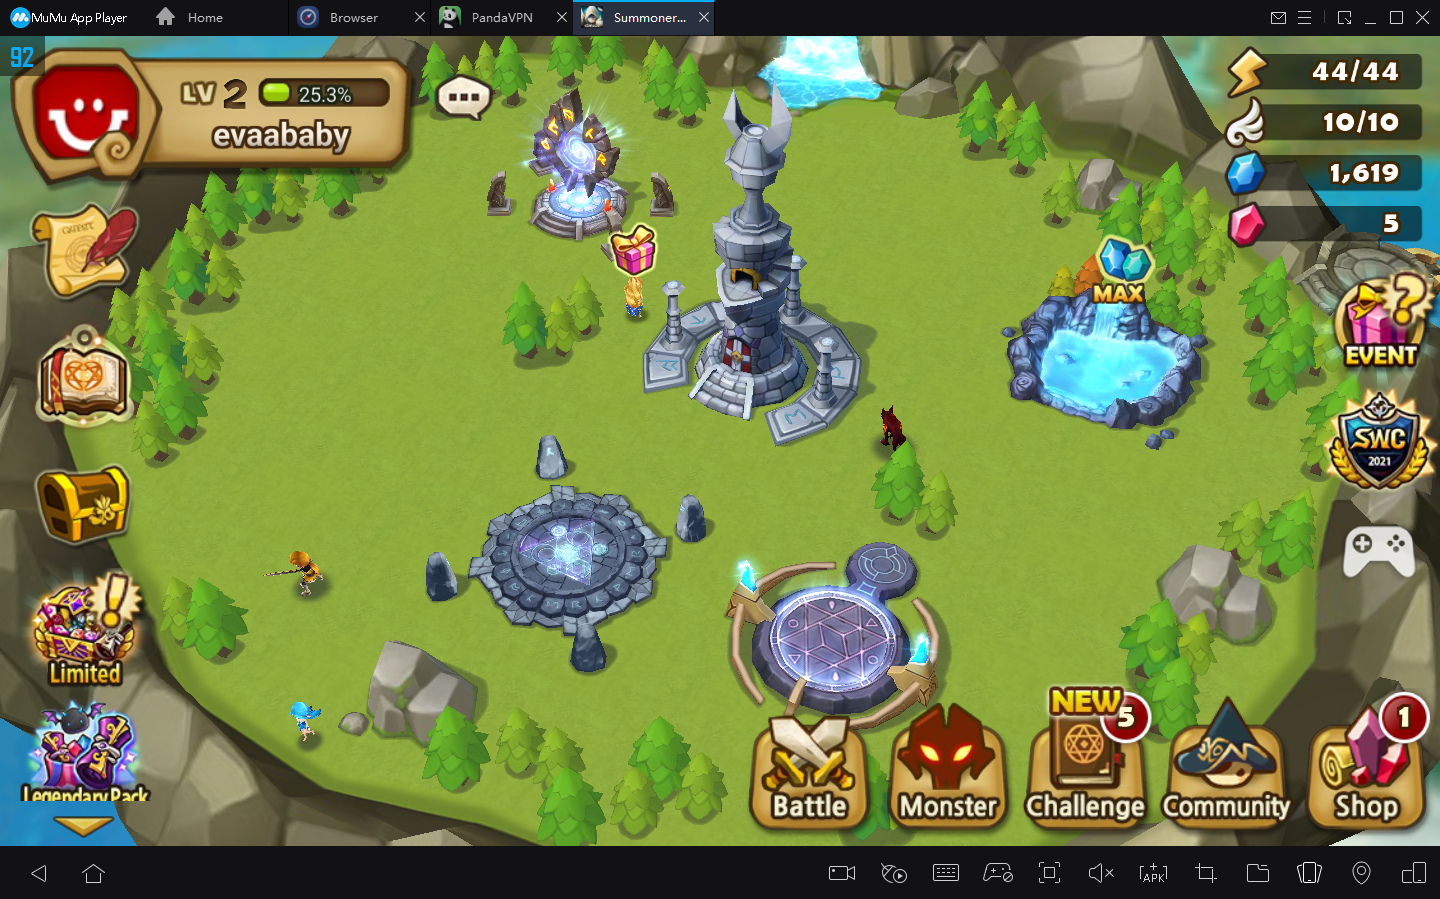 Summoners War: Has Released a Brand New 2vs2 Battle Mode6